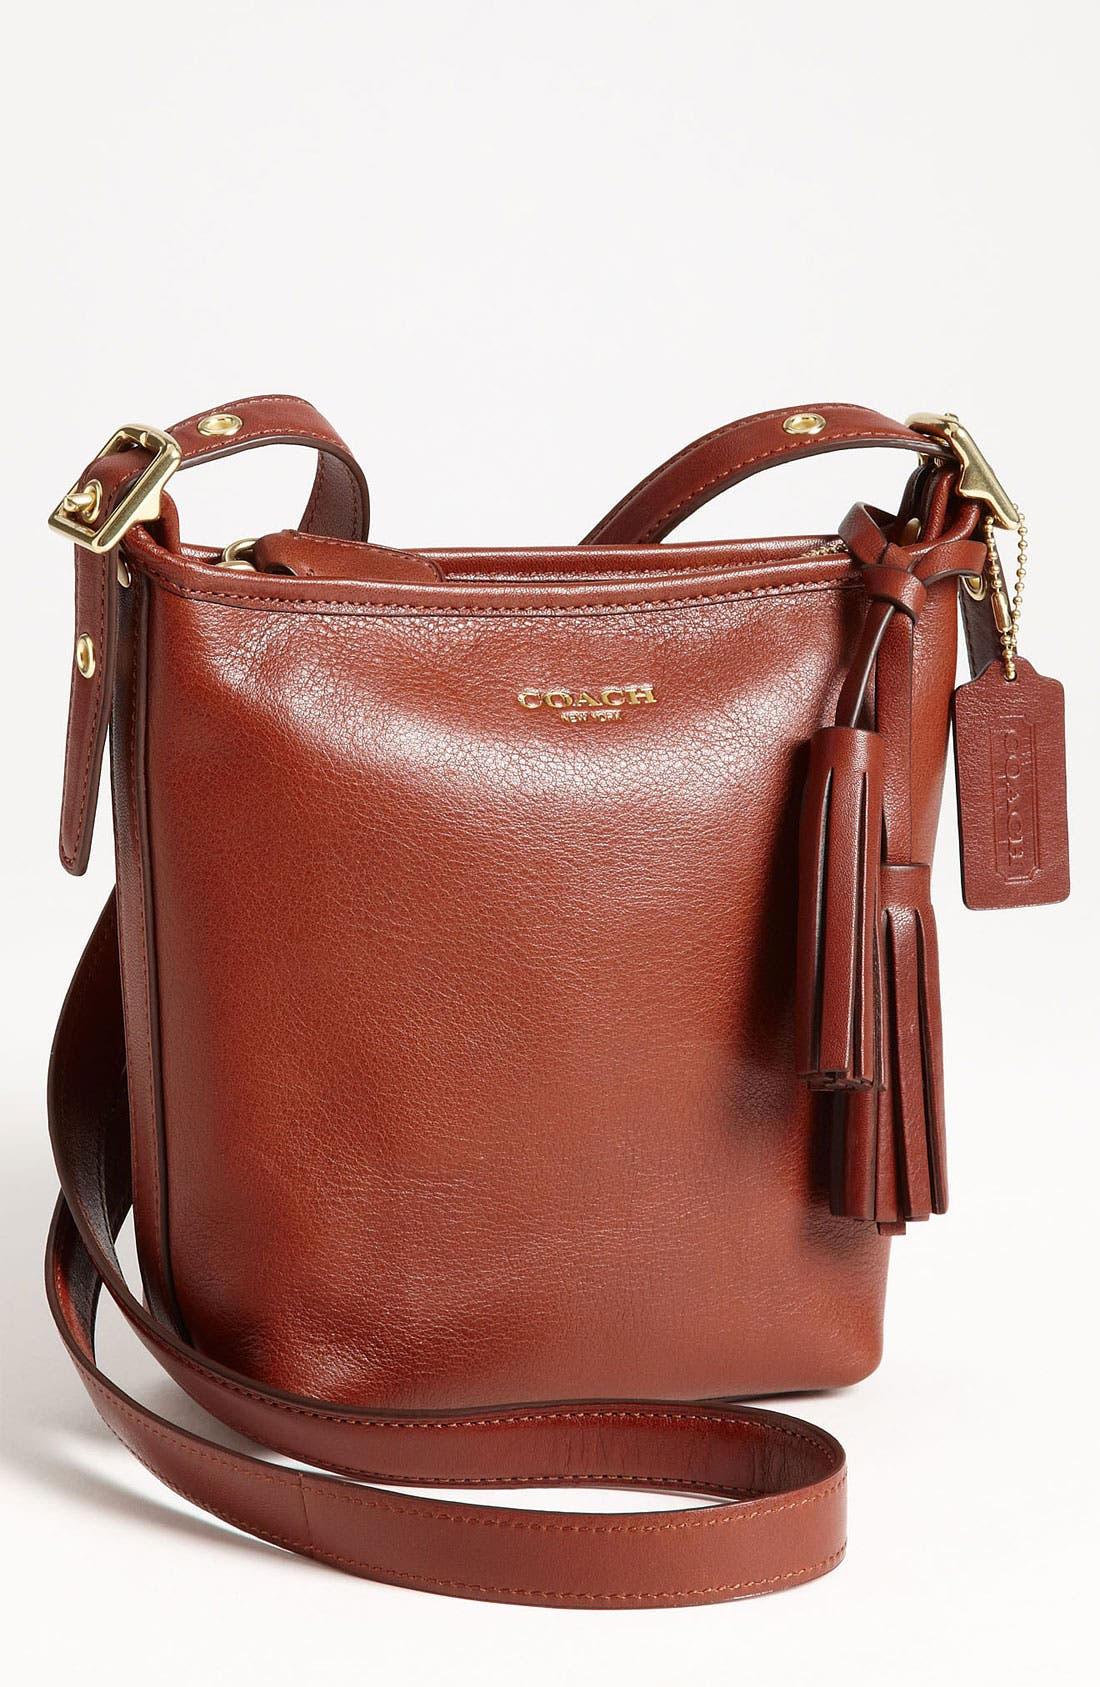 Main Image - COACH 'Legacy - Mini' Leather Shoulder Bag